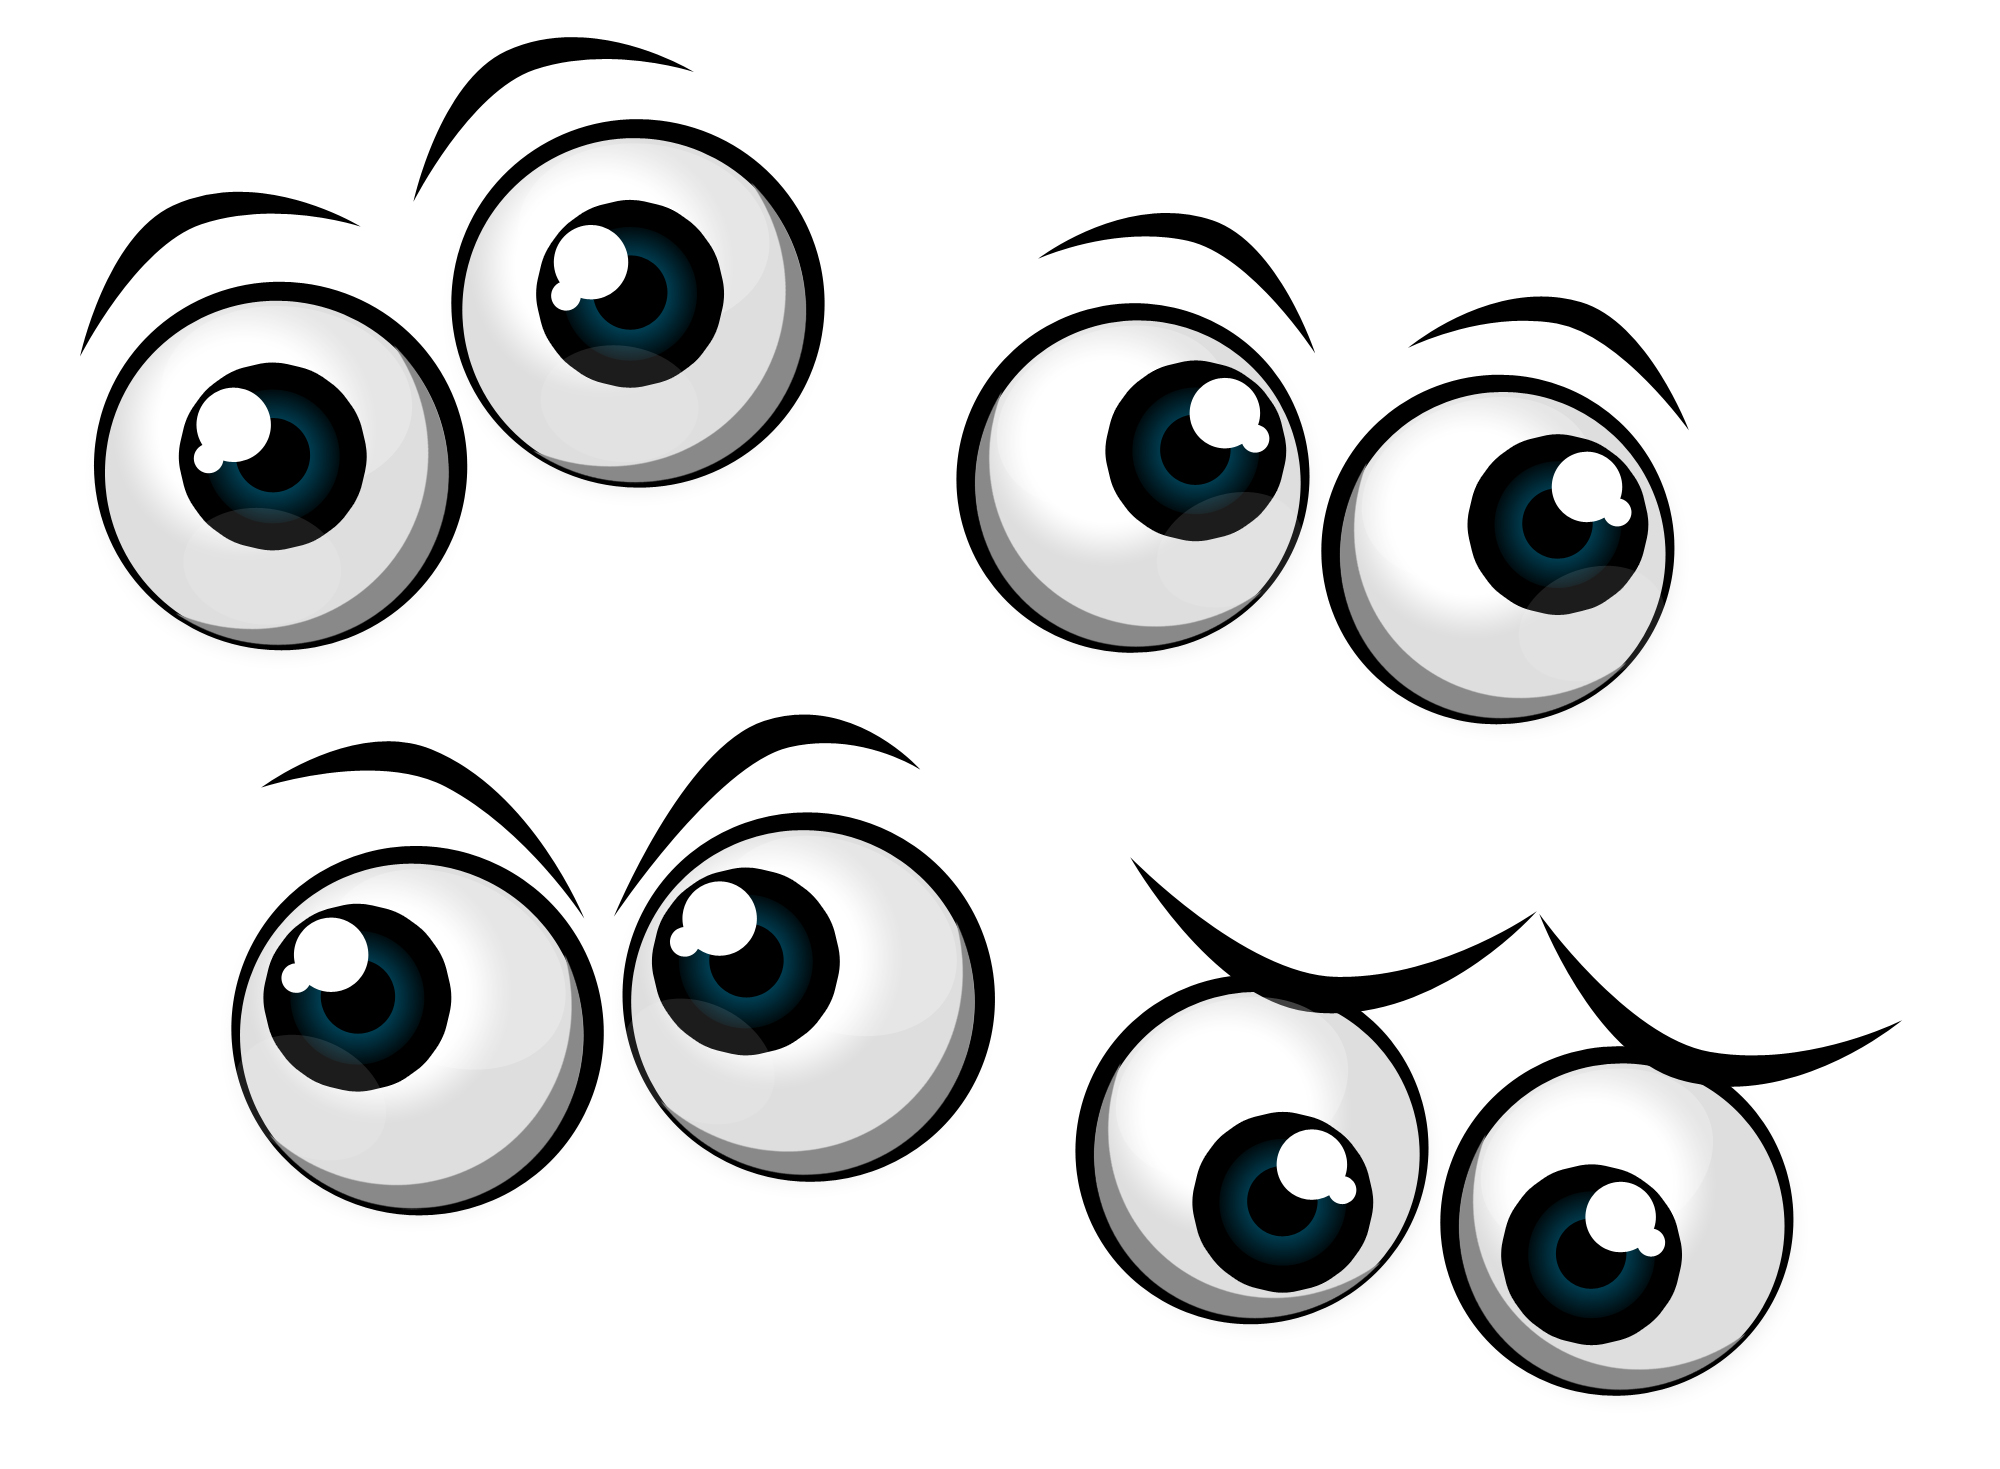 Icon Eye Download image #9671